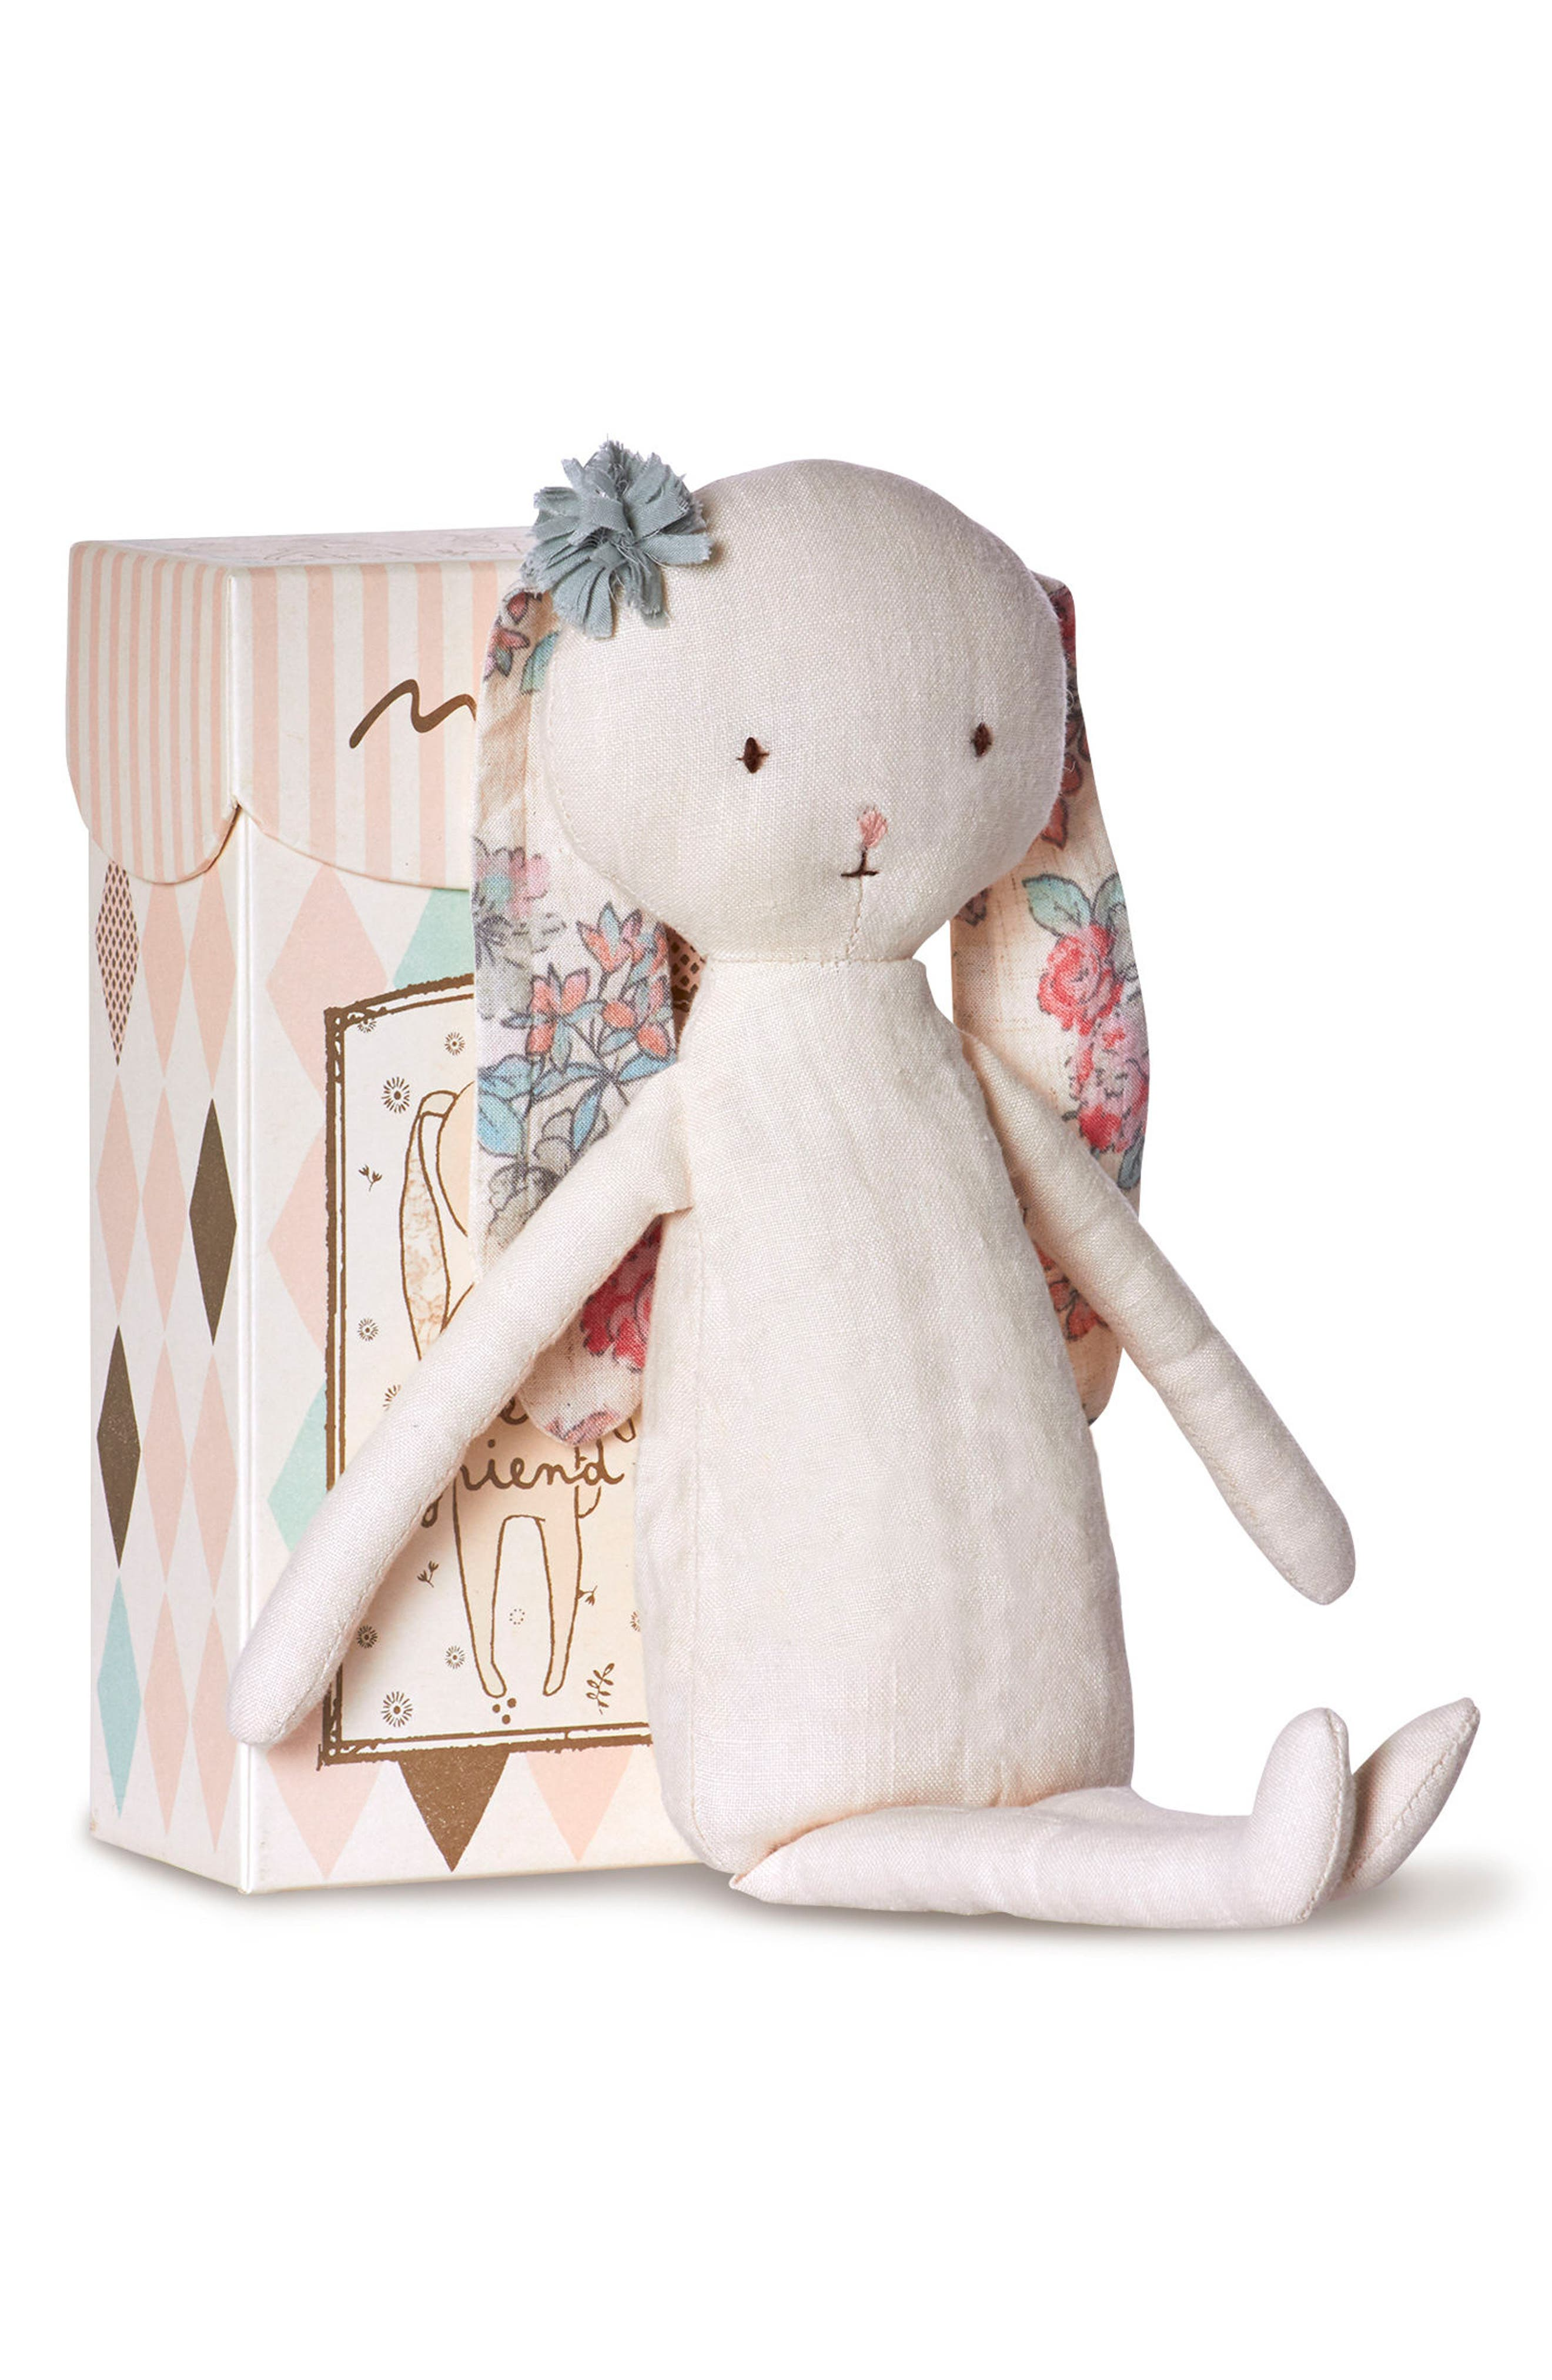 Best Friends Bunny Stuffed Animal,                         Main,                         color, 900